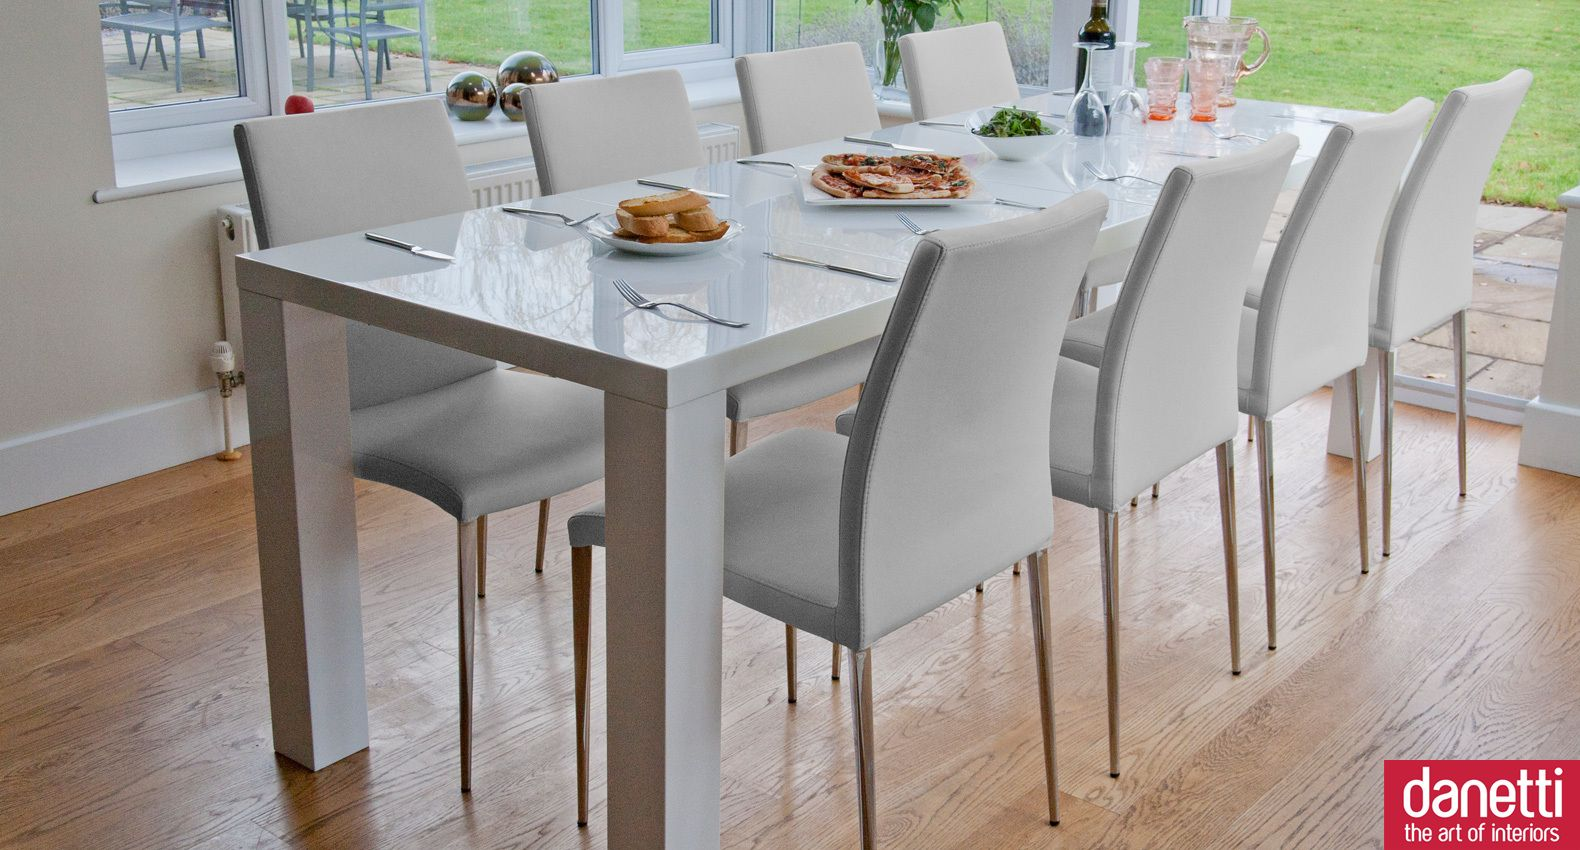 Fern White Gloss Extending Dining Table Large Dining Room Table Dining Room Table Dining Table In Kitchen